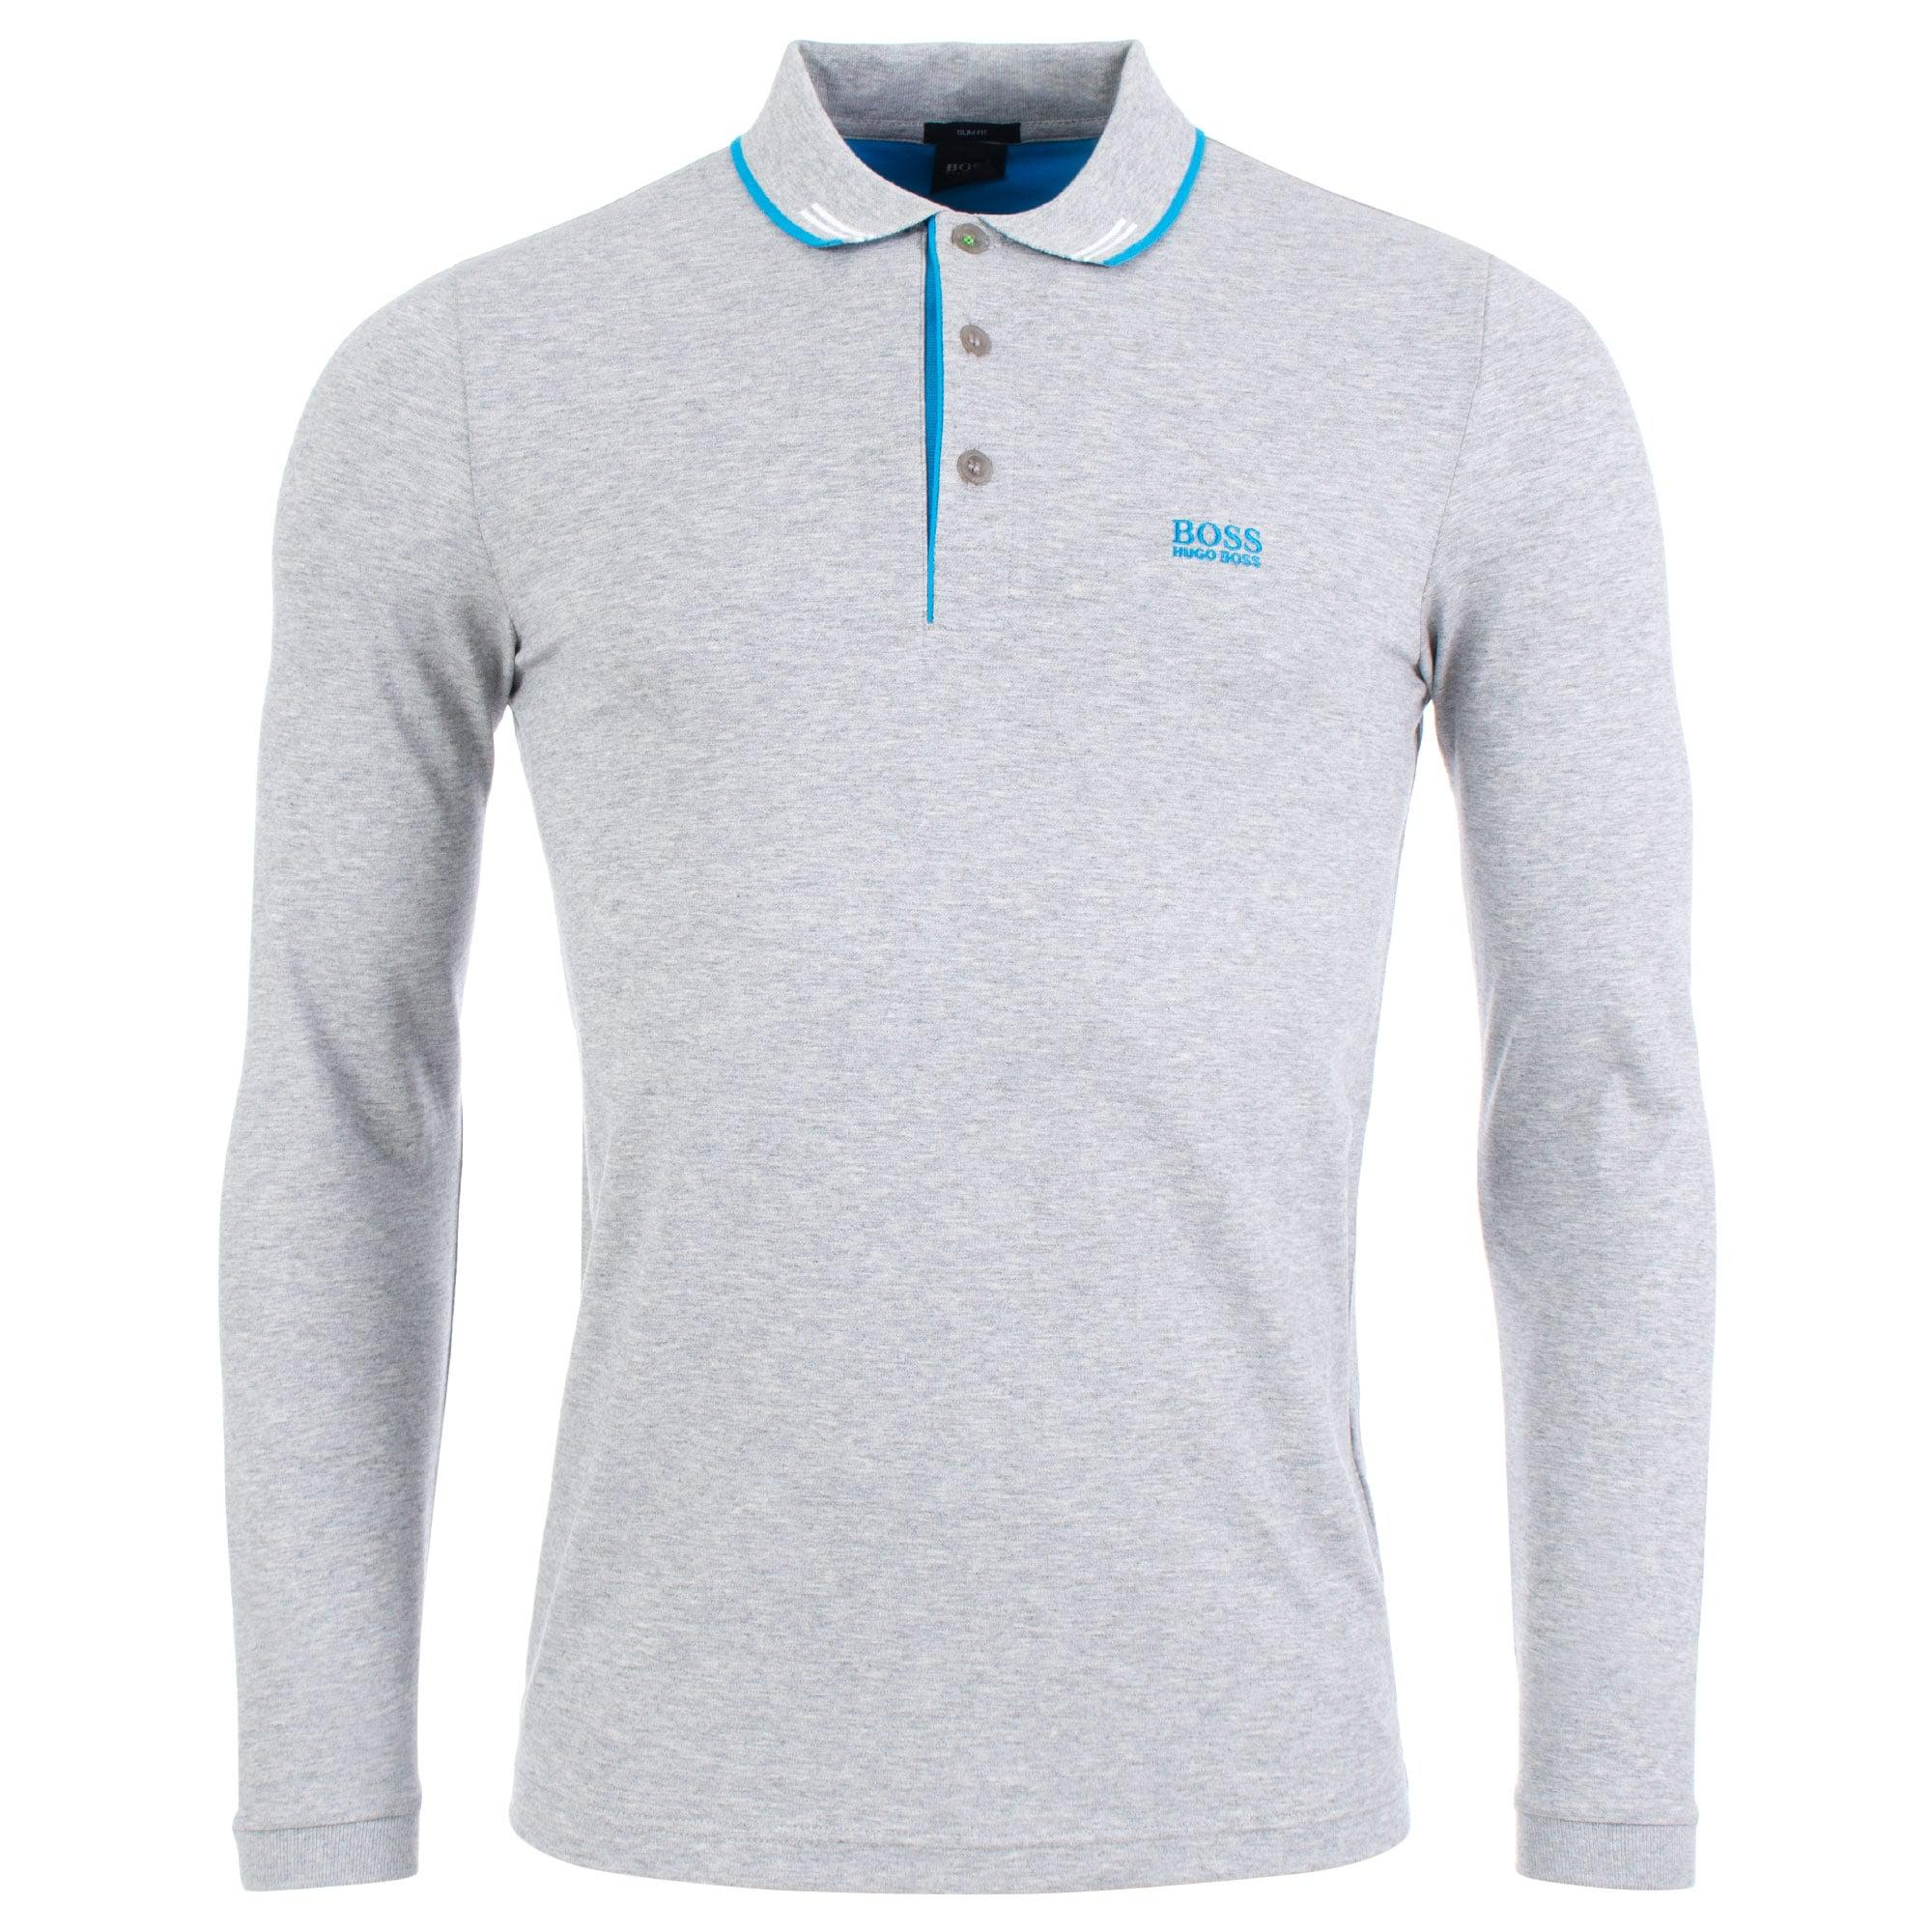 c4270d669 BOSS Athleisure Paulson Long Sleeve Polo in Gray for Men - Lyst